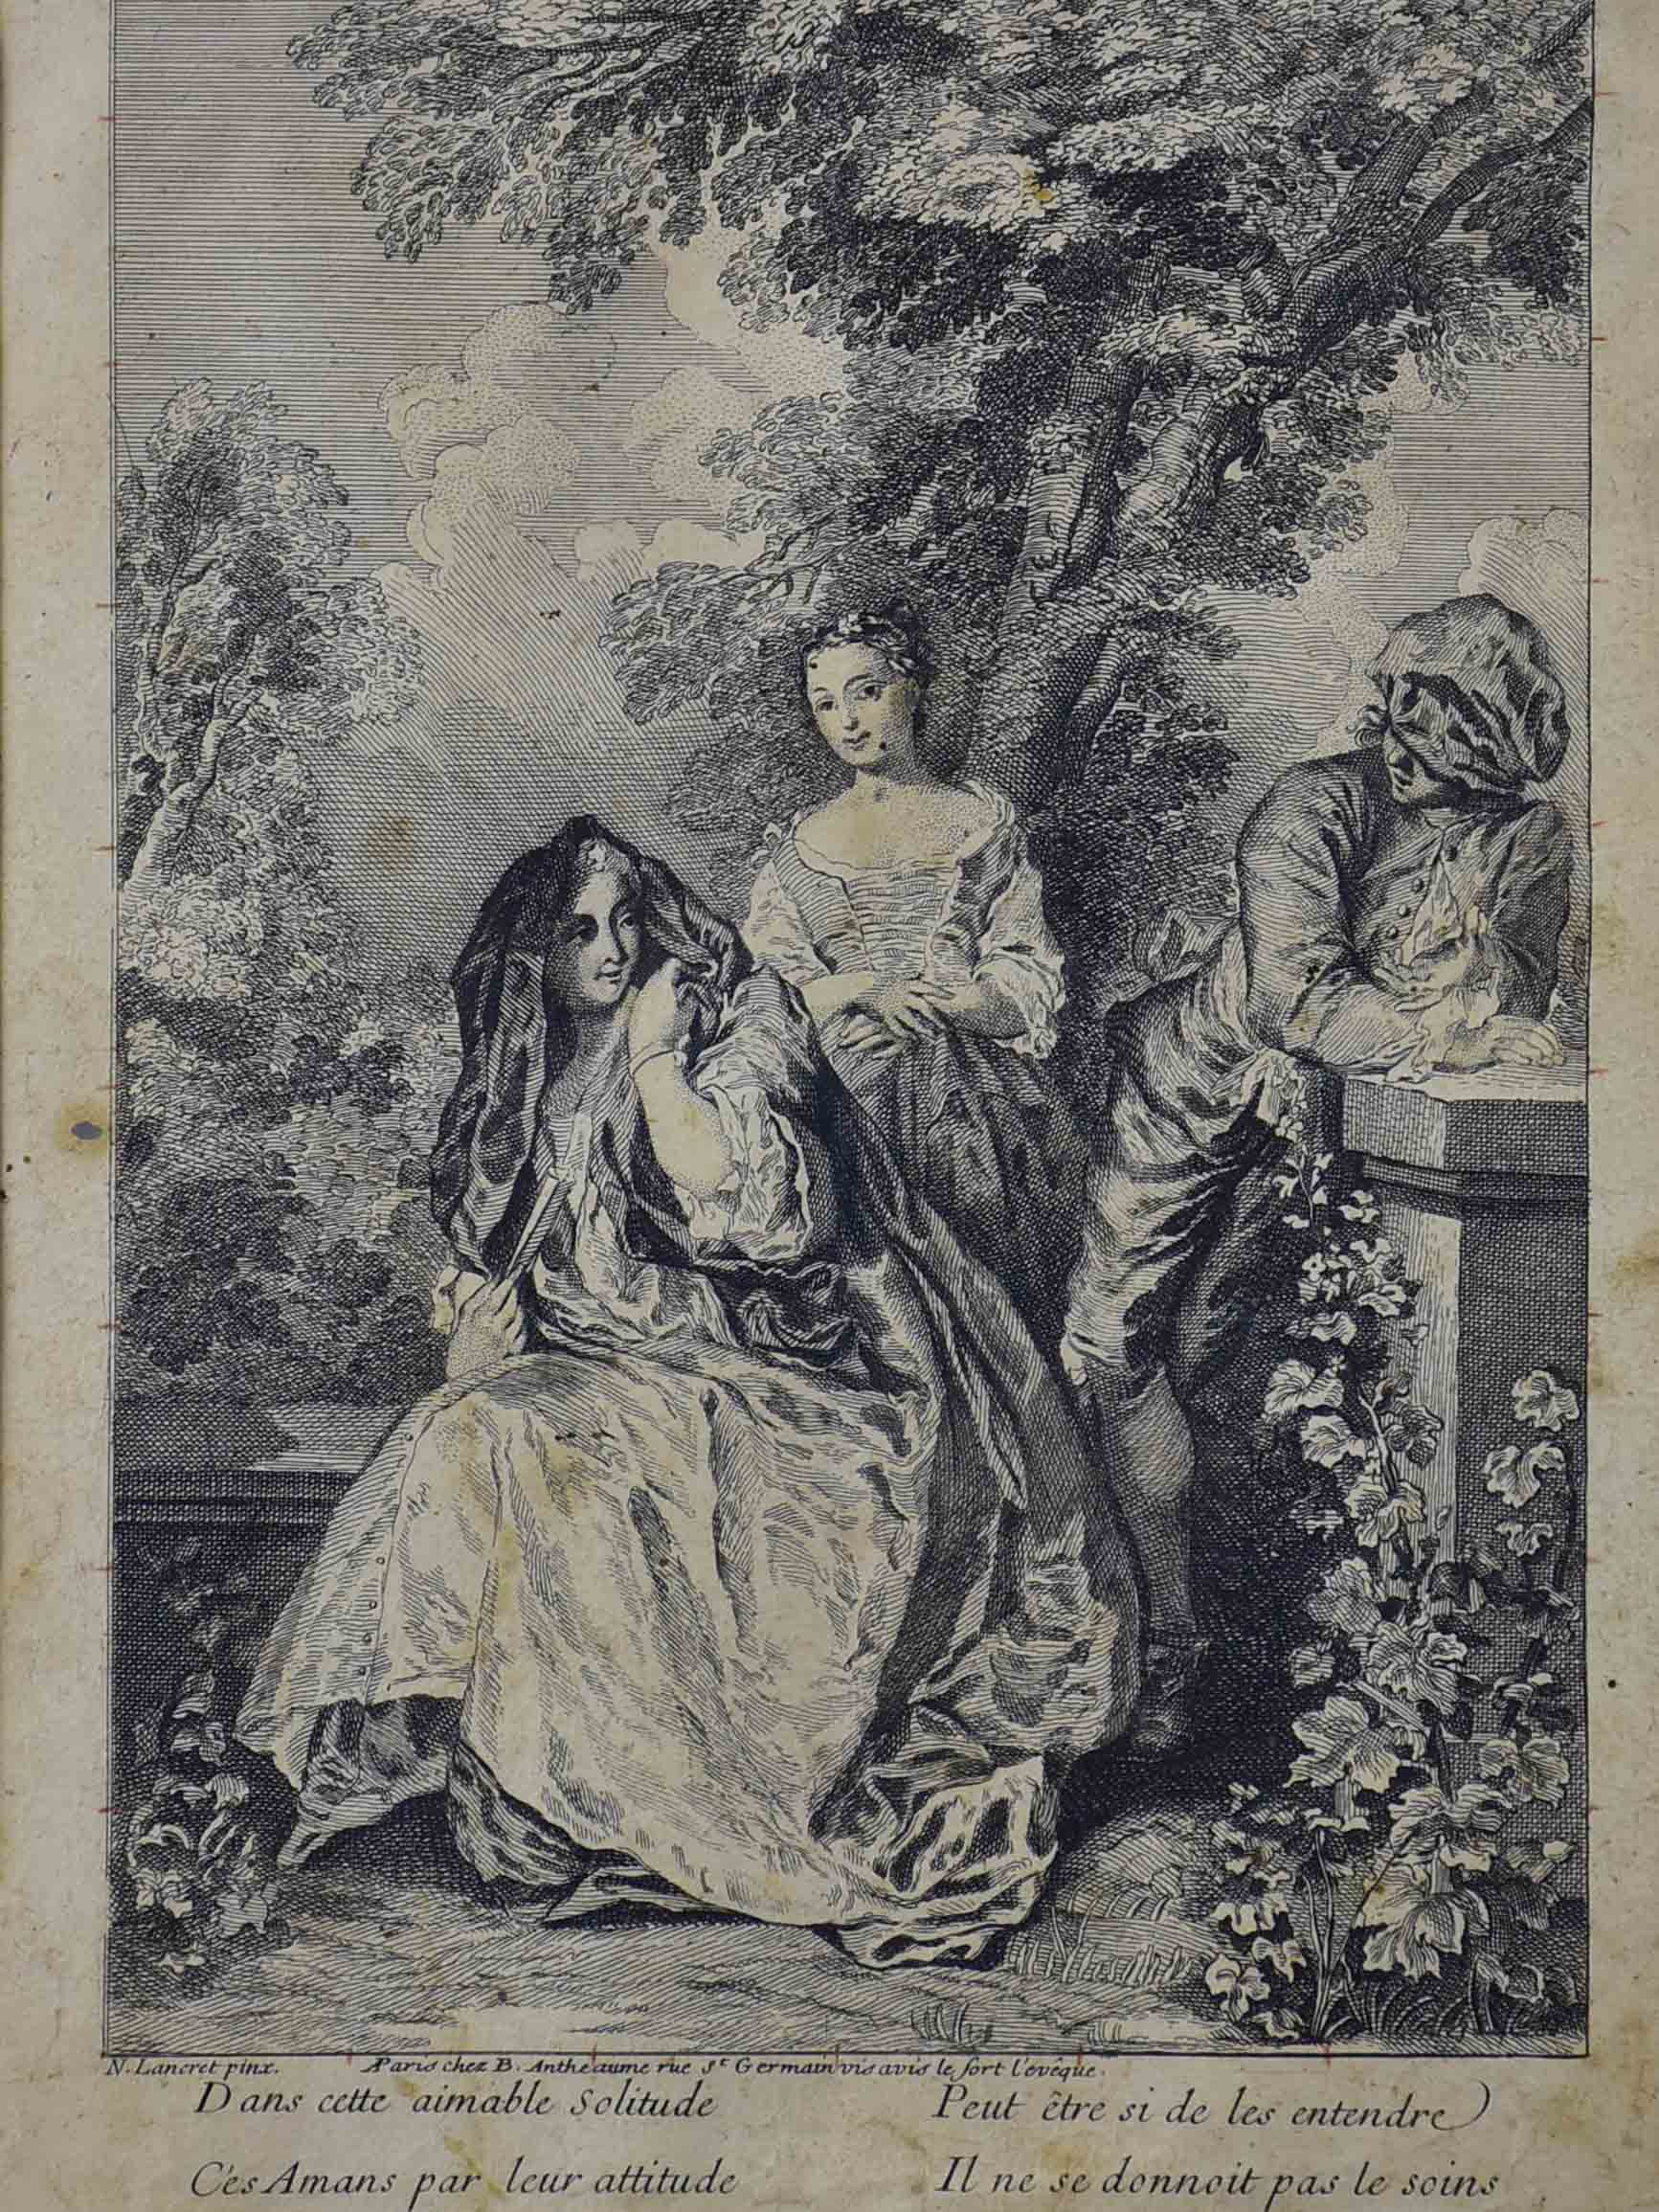 Antique French etching of women outdoors 12 ¾'' x 15 ¾''